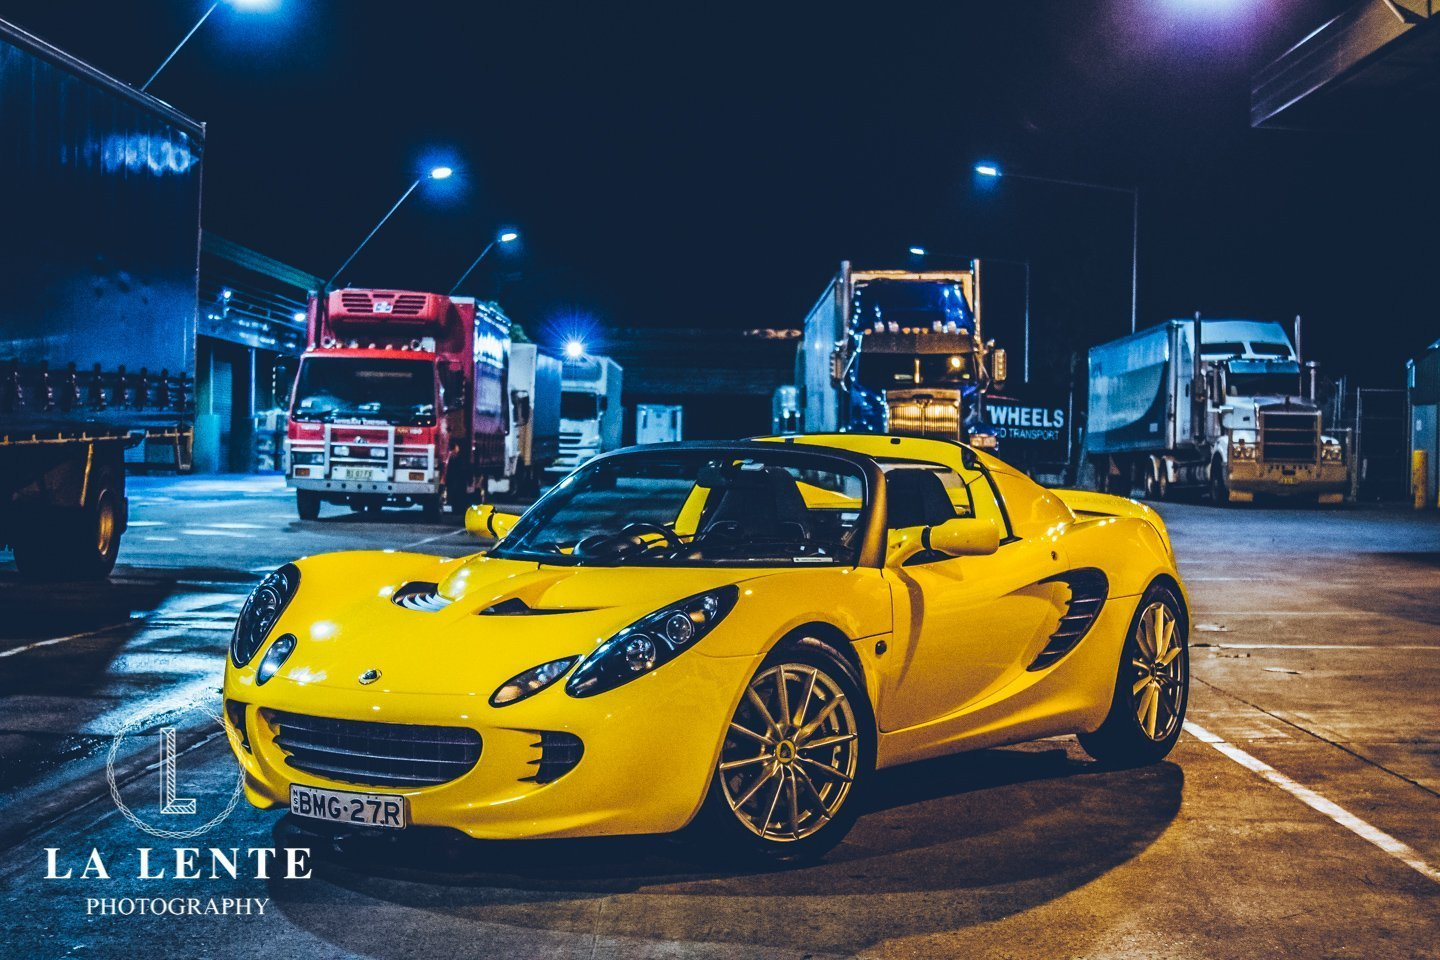 New Lotus Elise Car Photo Shoot On This Month